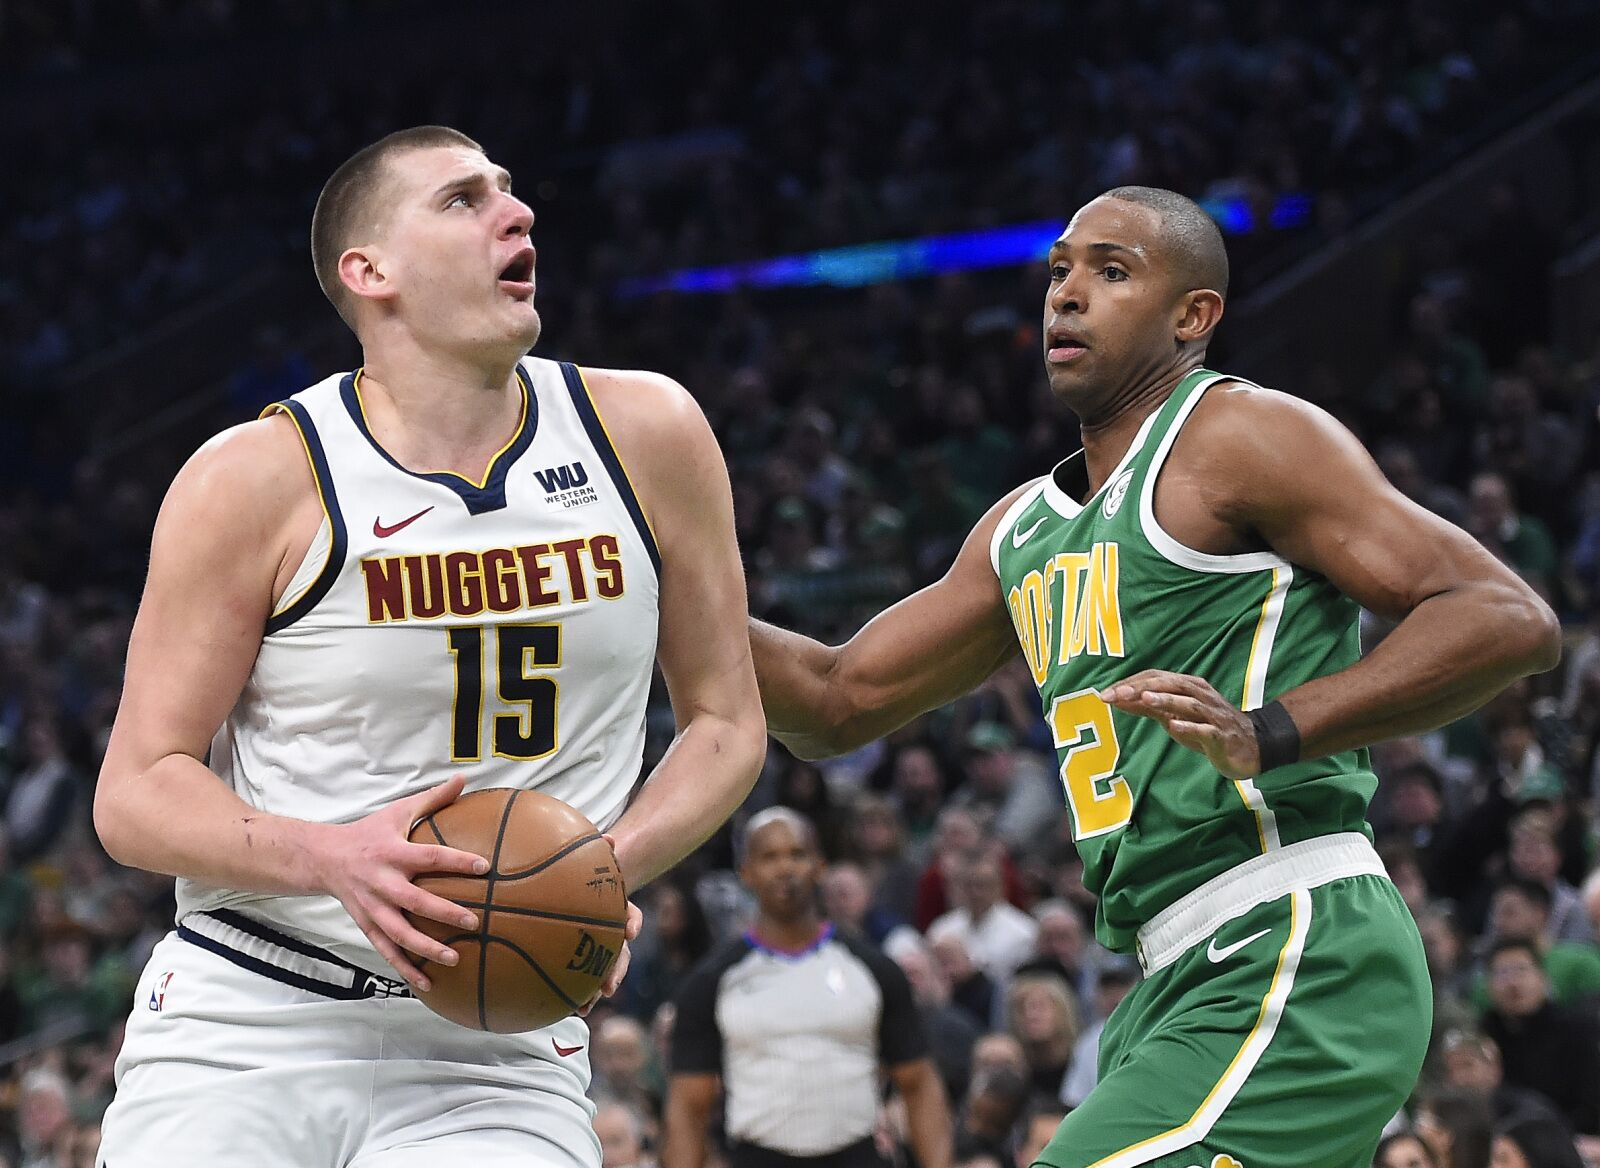 ee8b11a5e17a Takeaways from the Boston Celtics  114-105 loss to Isaiah Thomas and the  Denver Nuggets